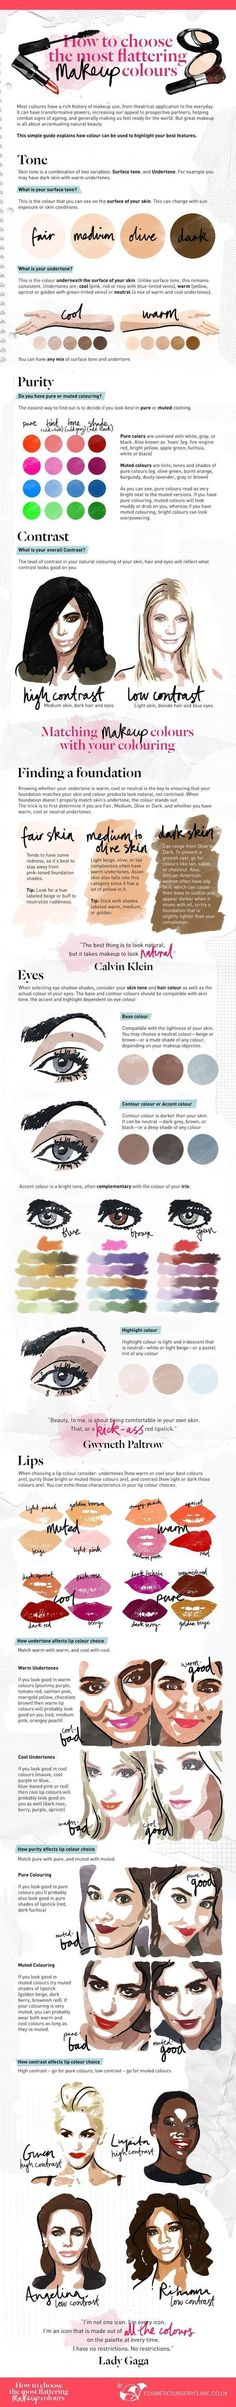 How to Choose the Most Flattering Makeup Colors for Your Skin Tone makeuptutorials.c...